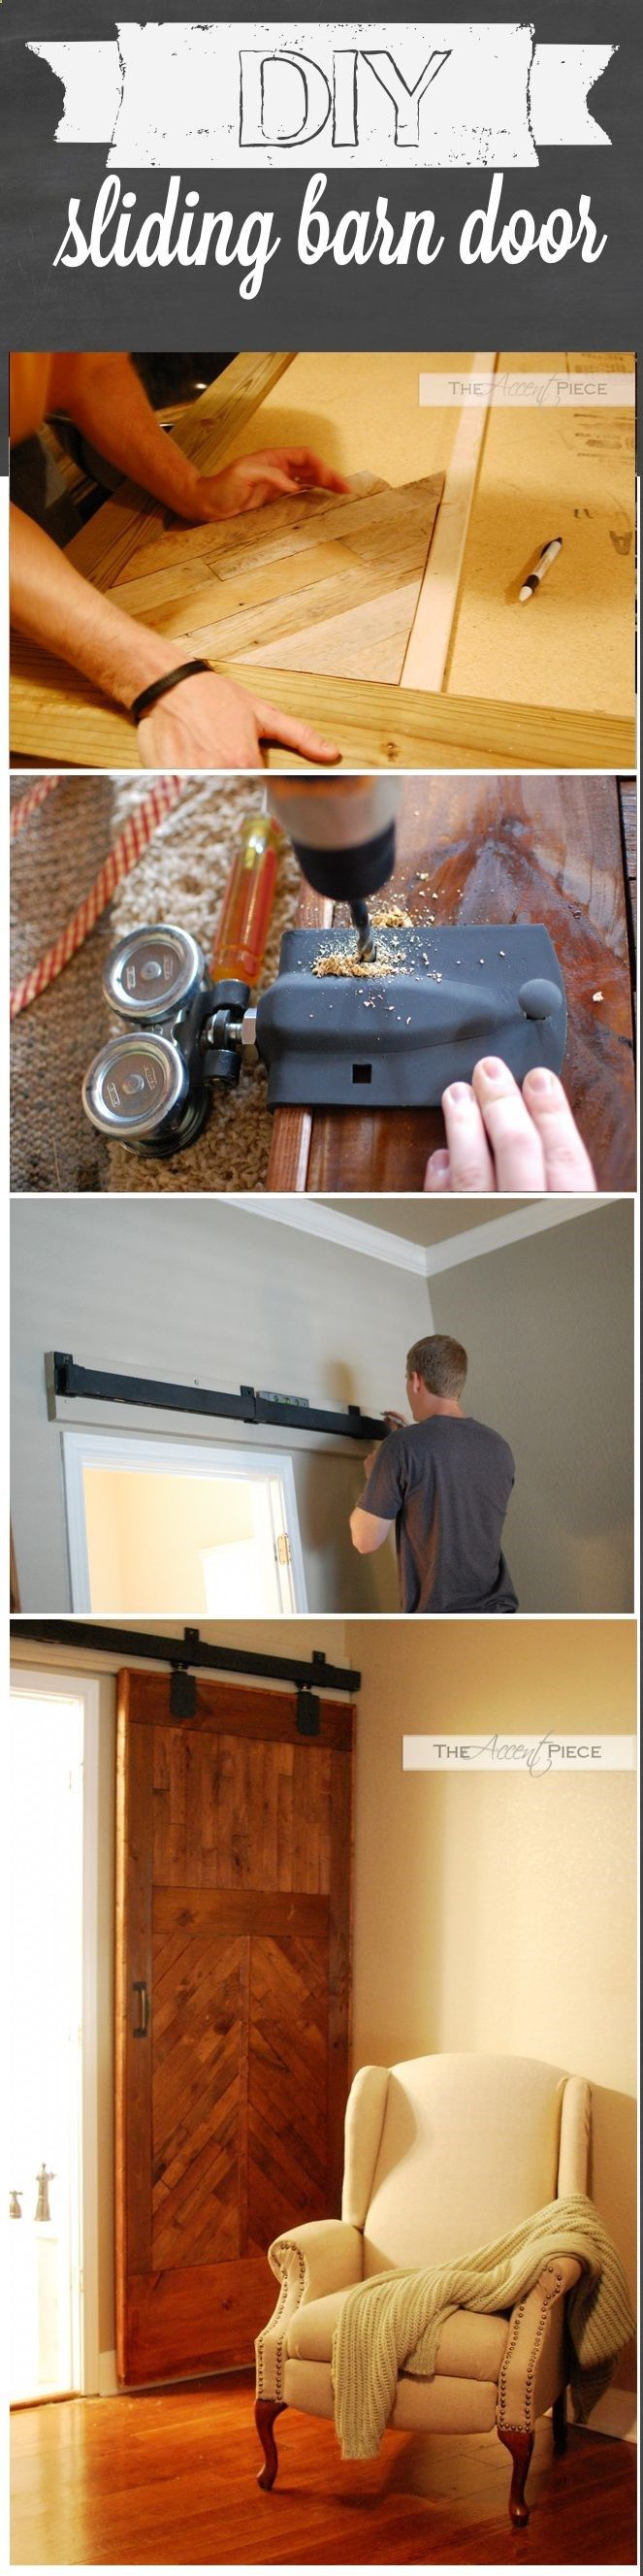 DIY Sliding Barn Door! Wonder if we could do this instead of French doors to the office... Hmmm